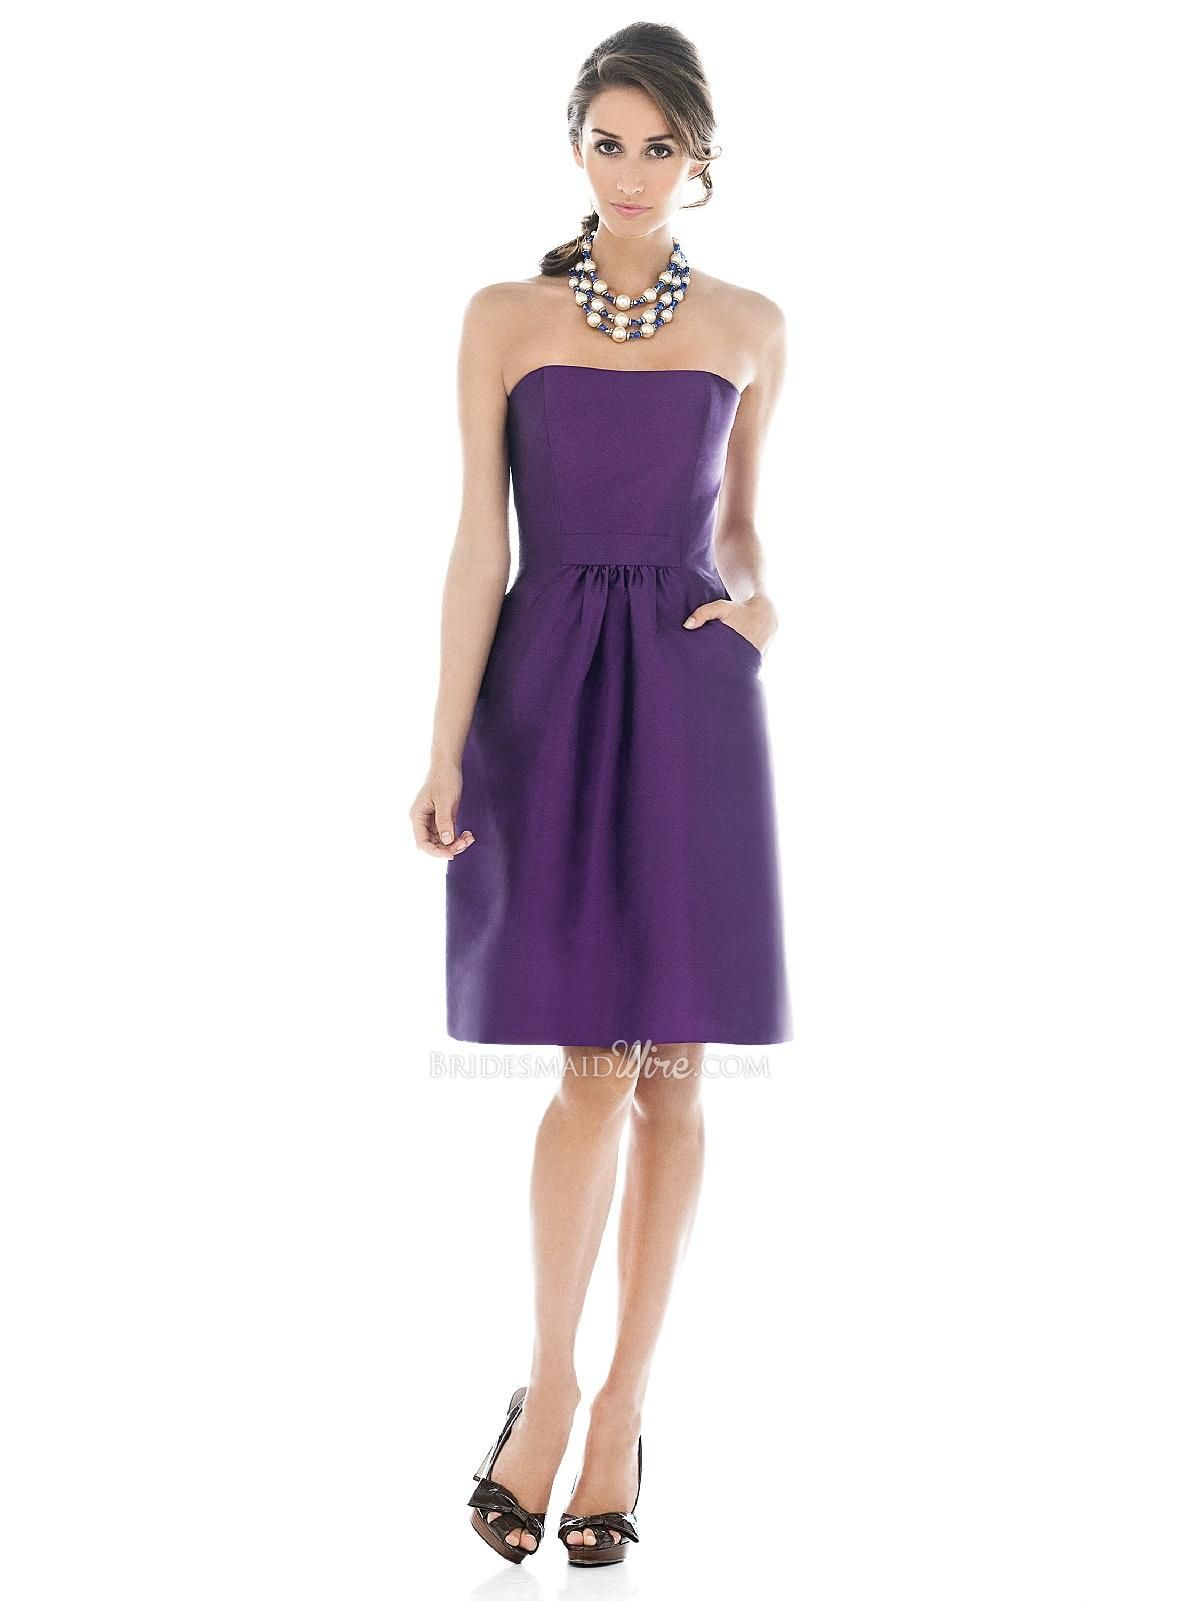 Purple knee length strapless satin bridesmaid dress 24300 purple knee length strapless satin bridesmaid dress 24300 off 9999 ombrellifo Image collections